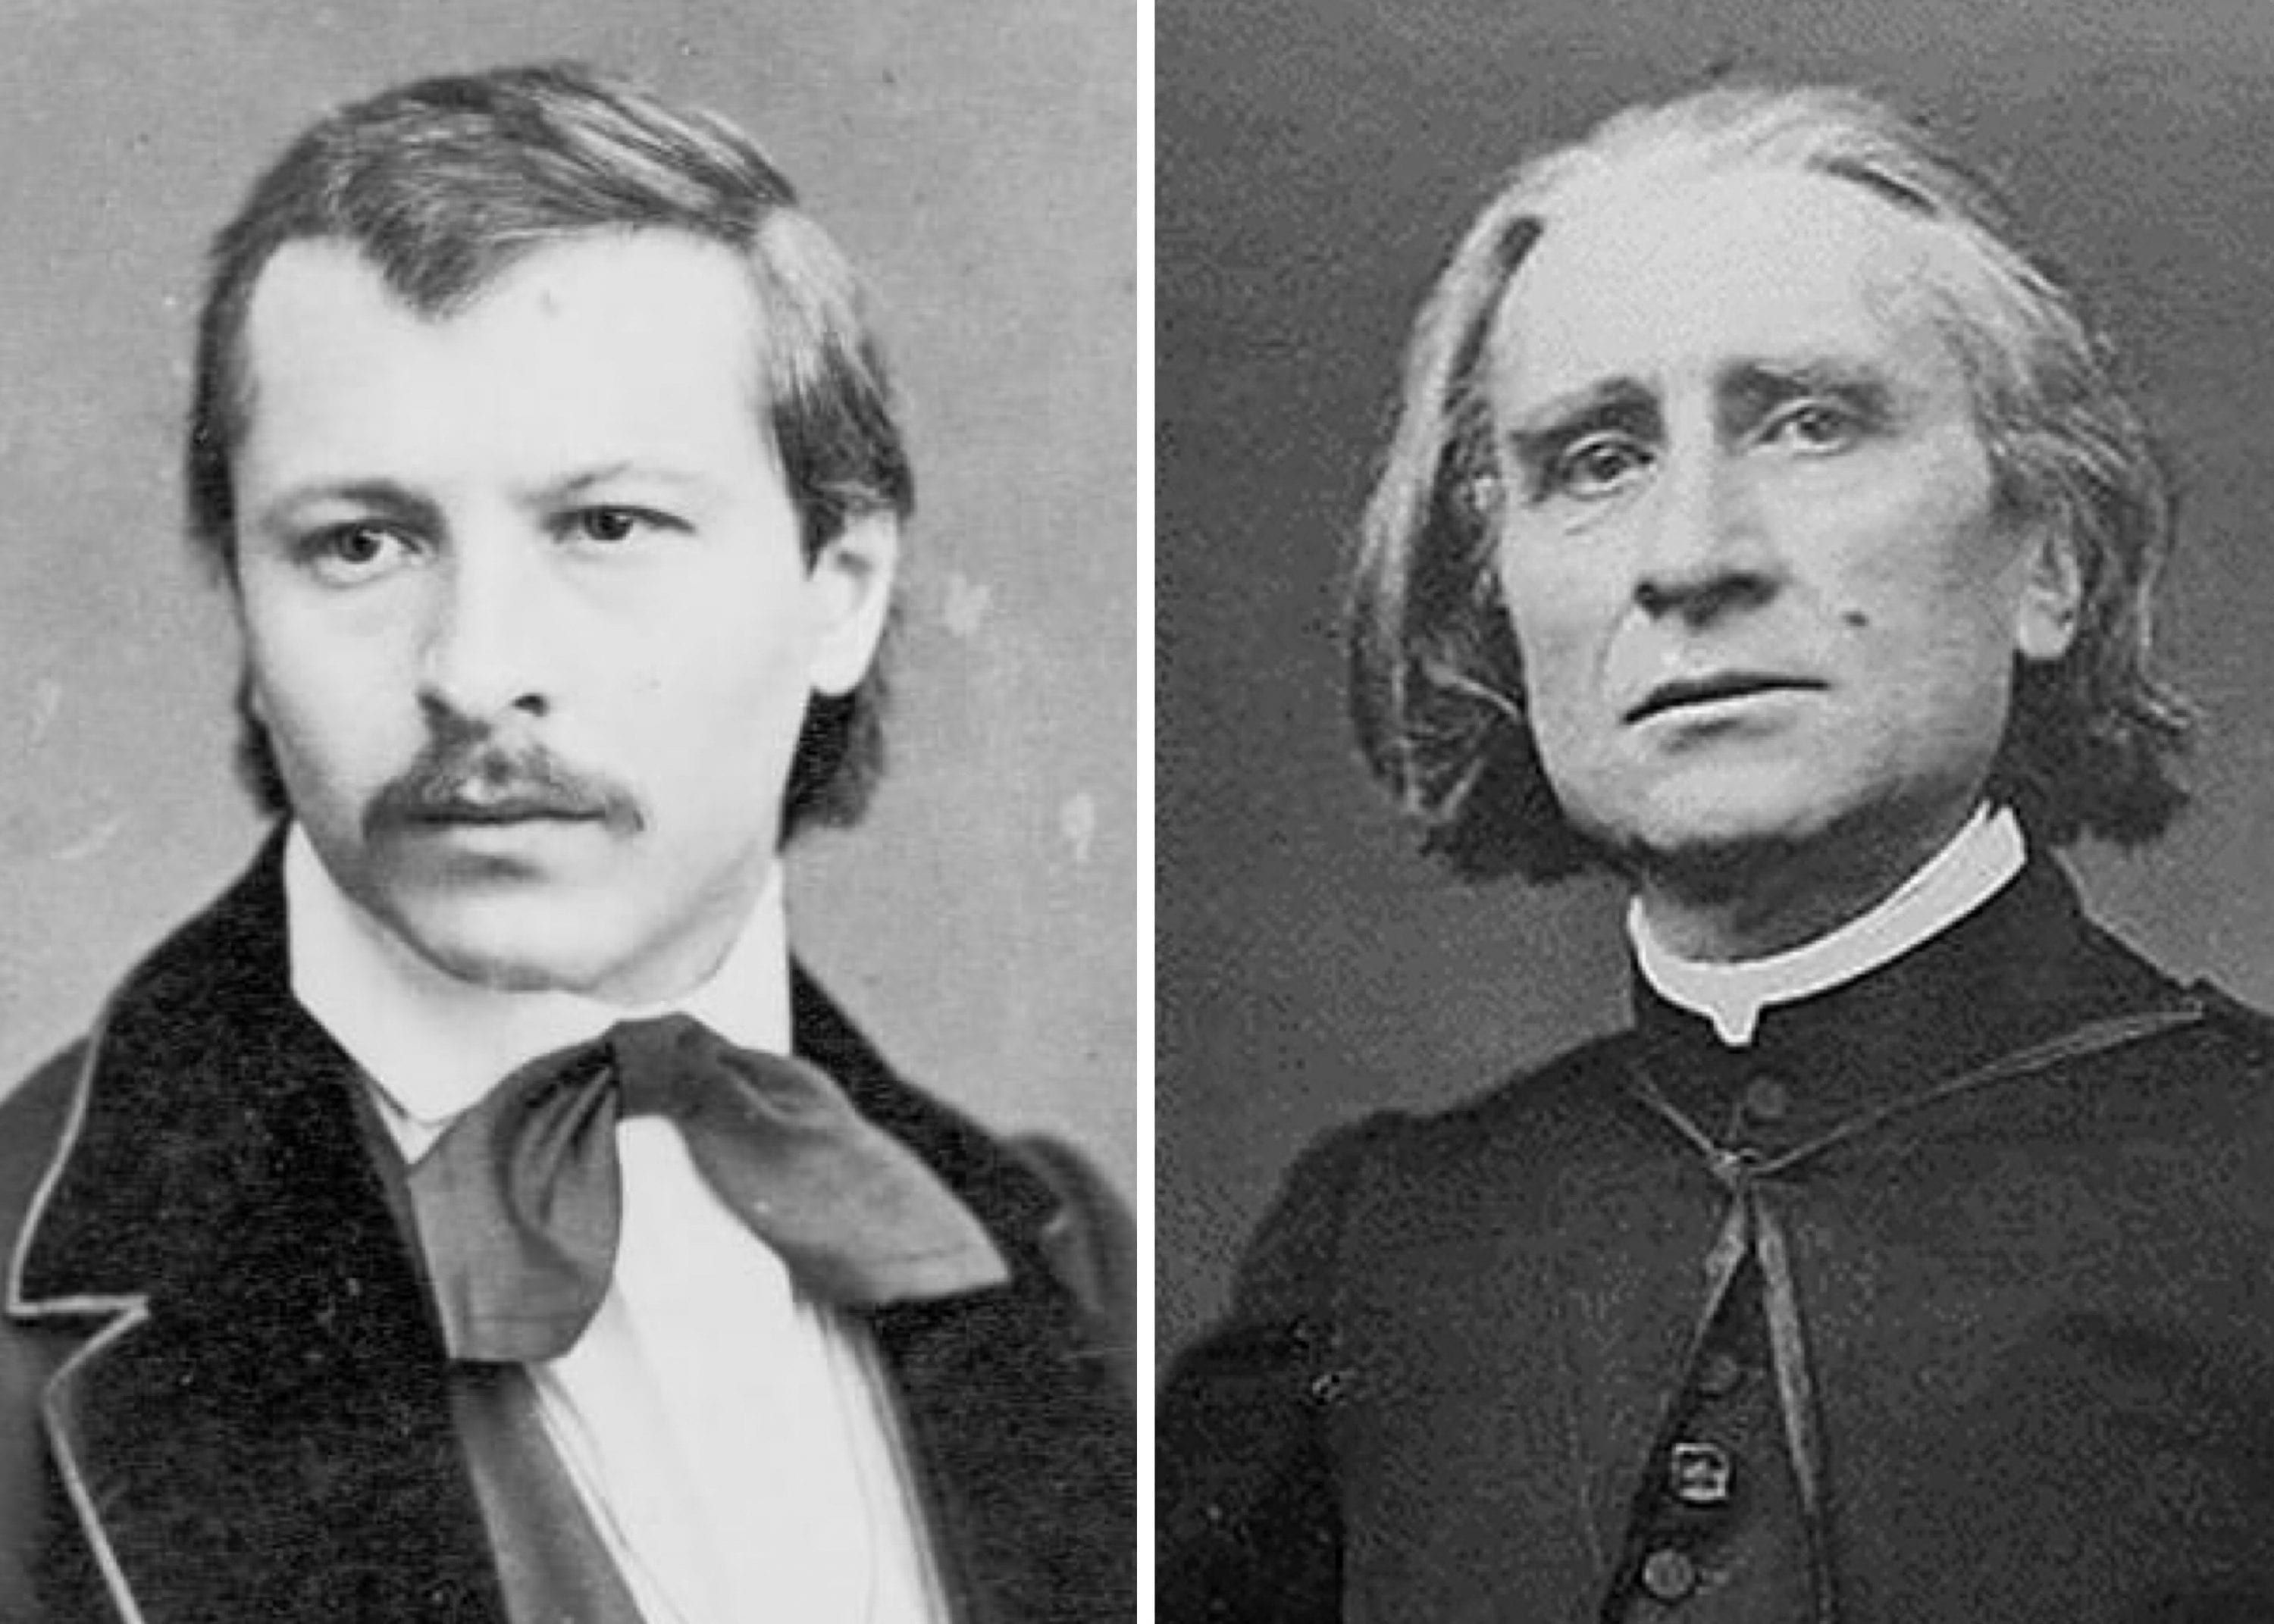 From Left to Right: Carl Tausig and Franz Liszt